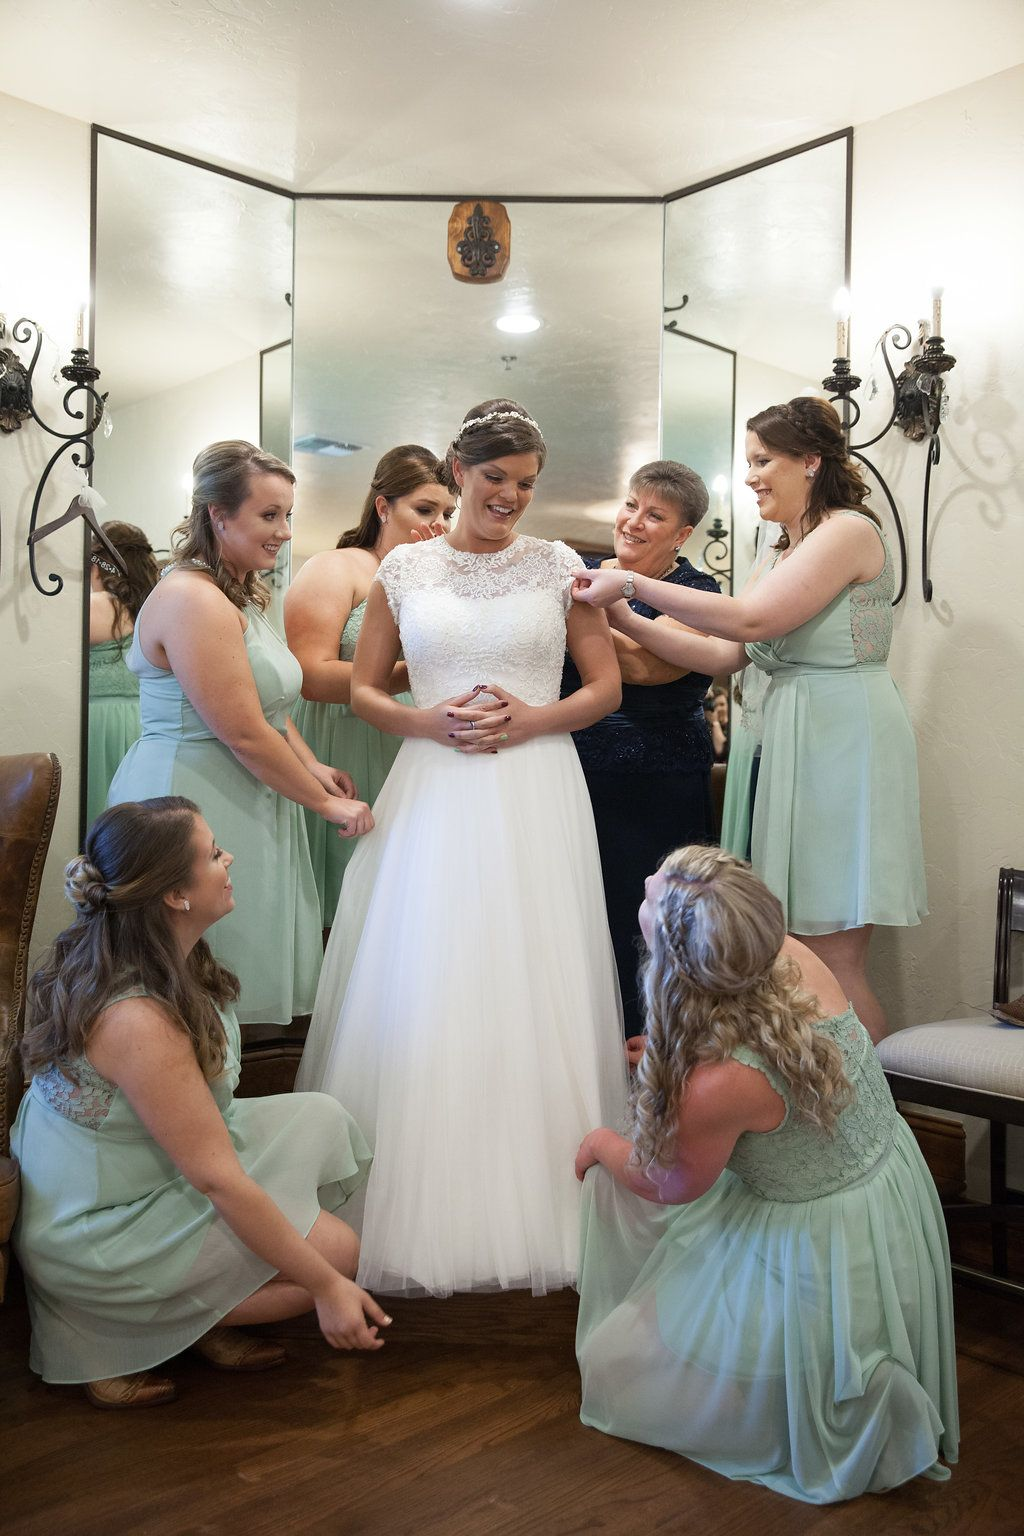 Bridesmaids Helping The Bride With Her Dress Bridesmaid Photo